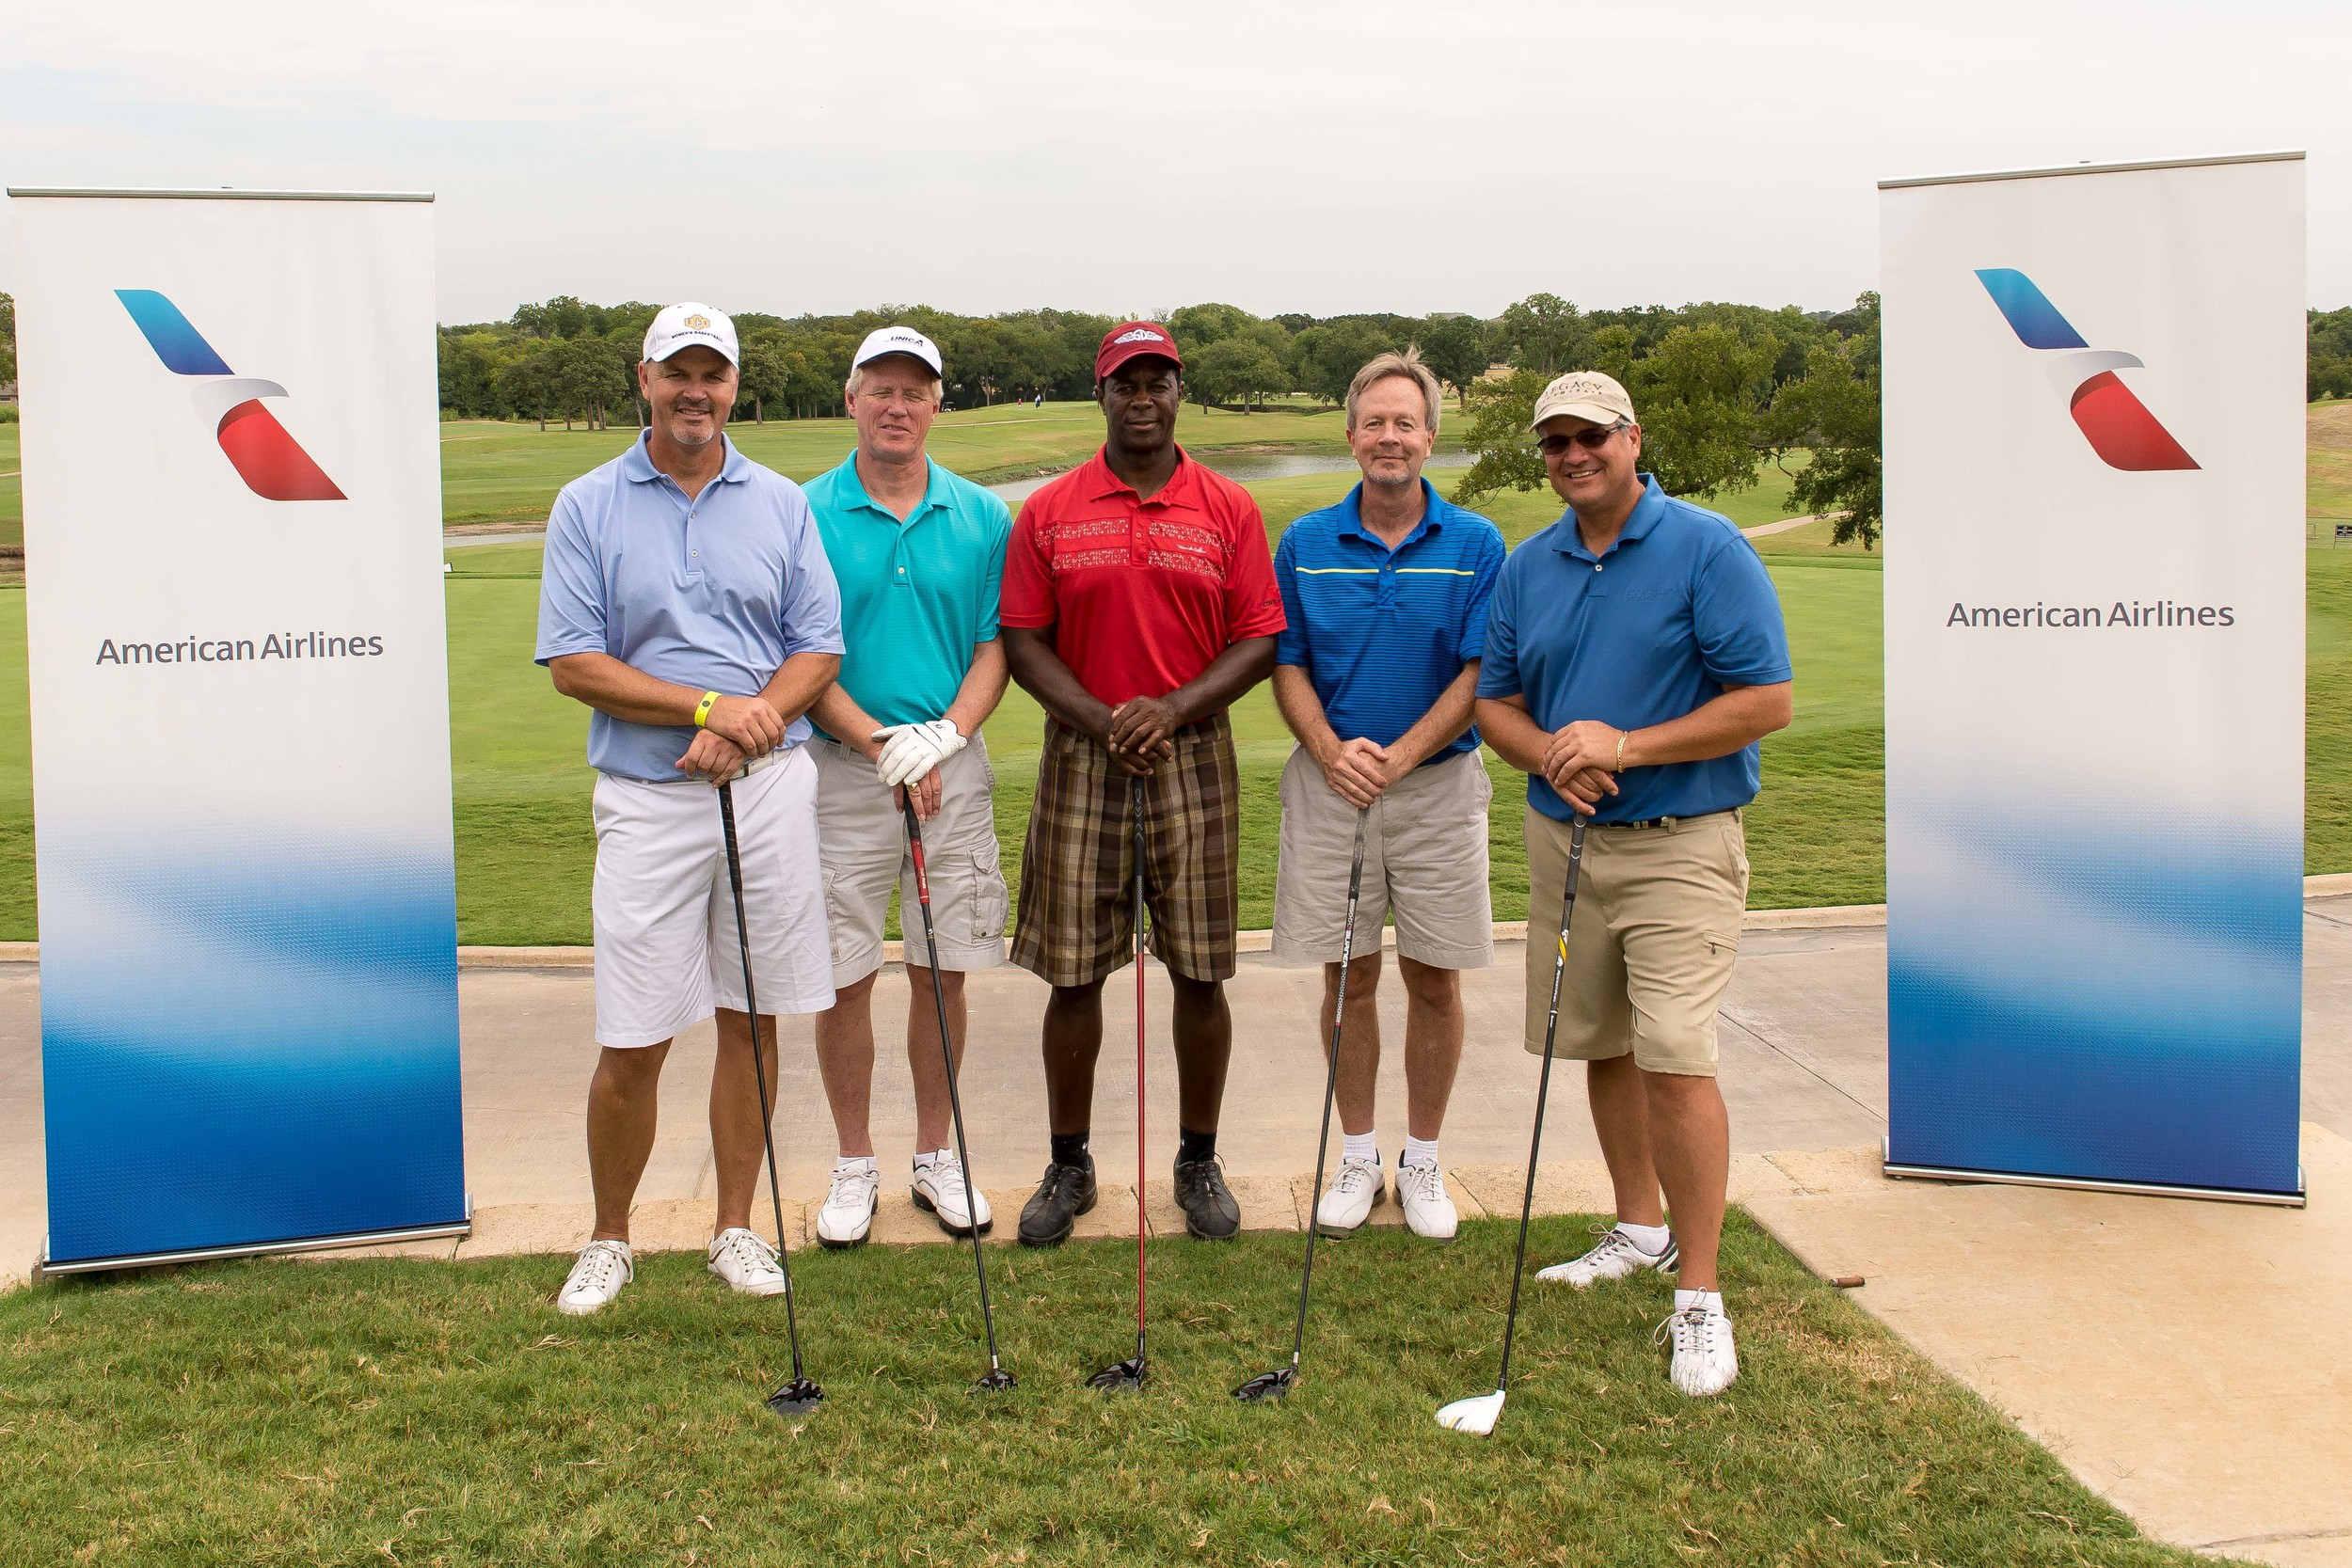 American Airlines 3rd Annual Vision for Haiti Celebrity Golf Tournament